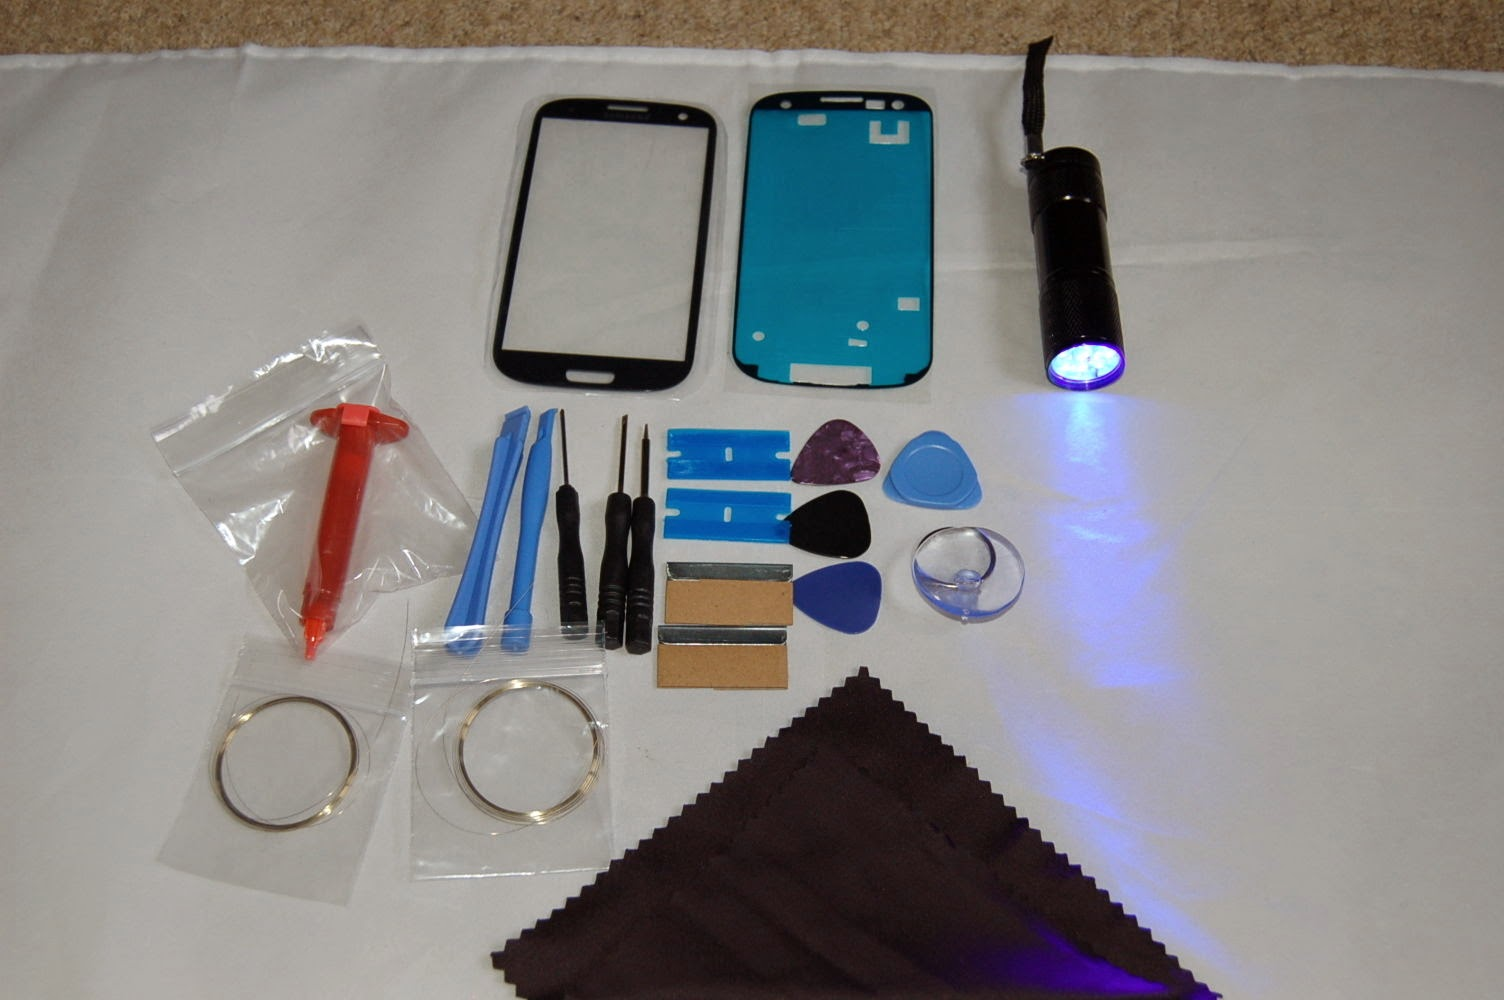 samsung galaxy s3 i9300 i9305front glass repair kit pebble blue with uv torch